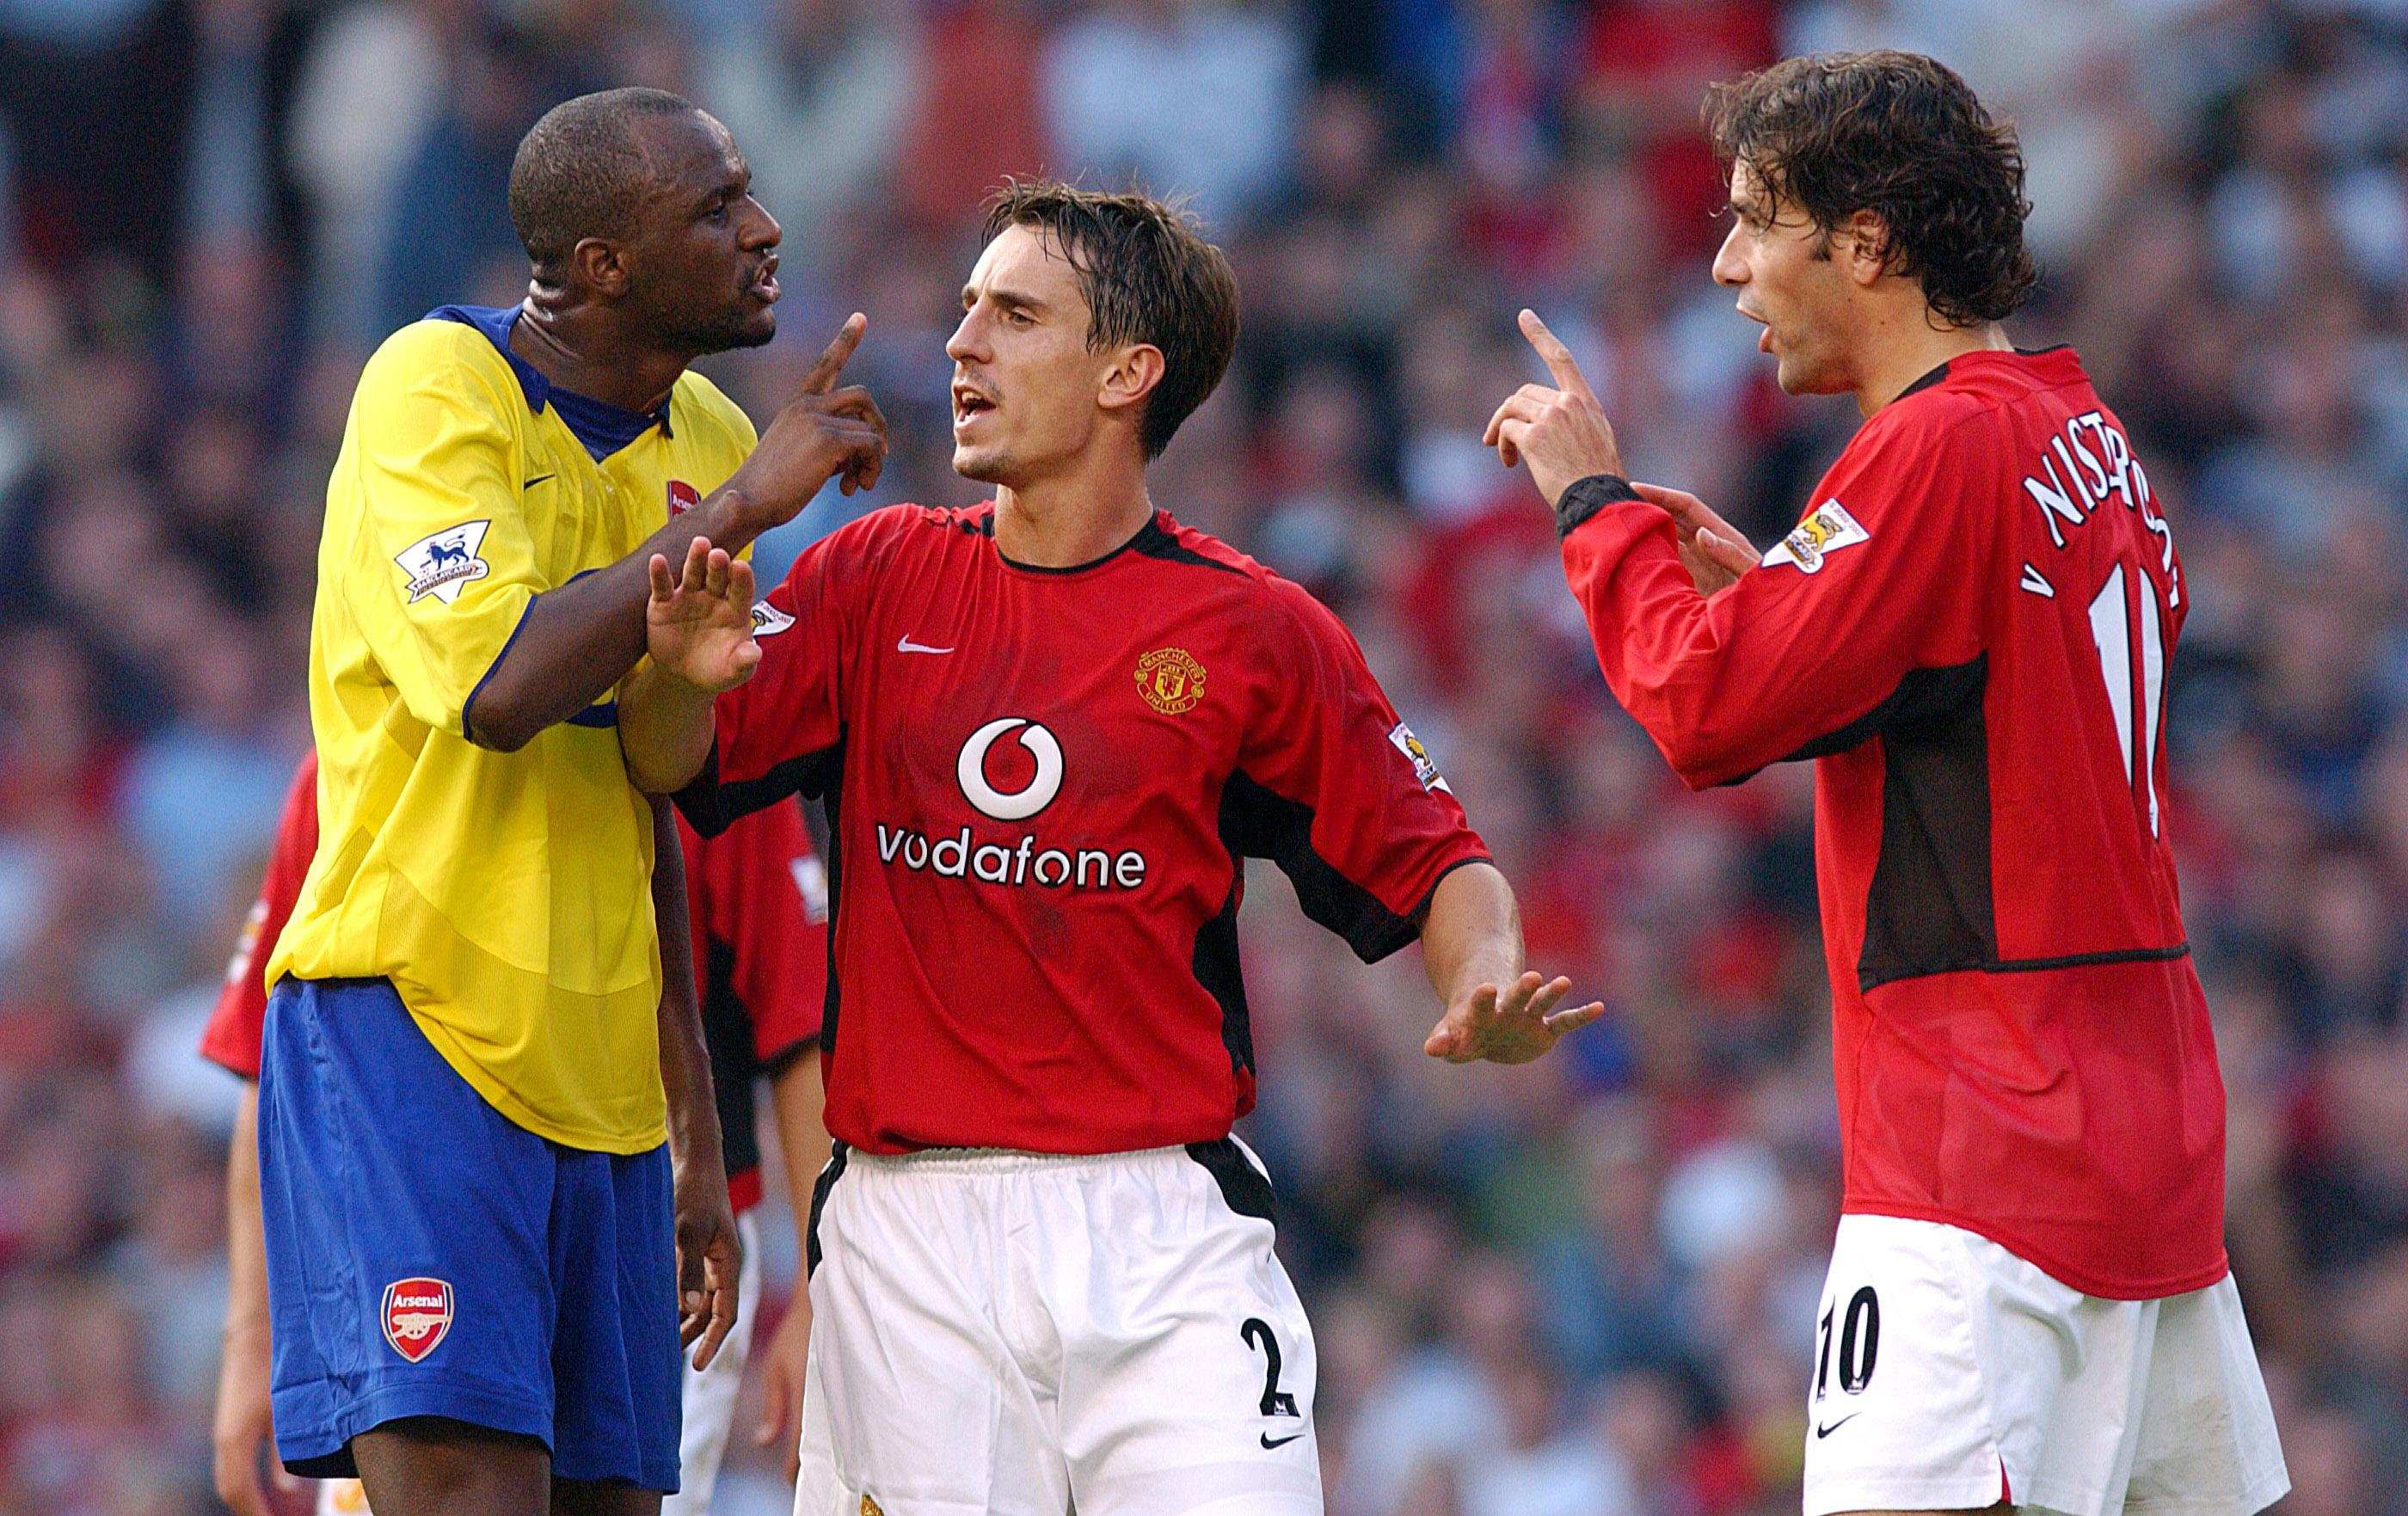 'Battle of Old Trafford' took place in September 2003